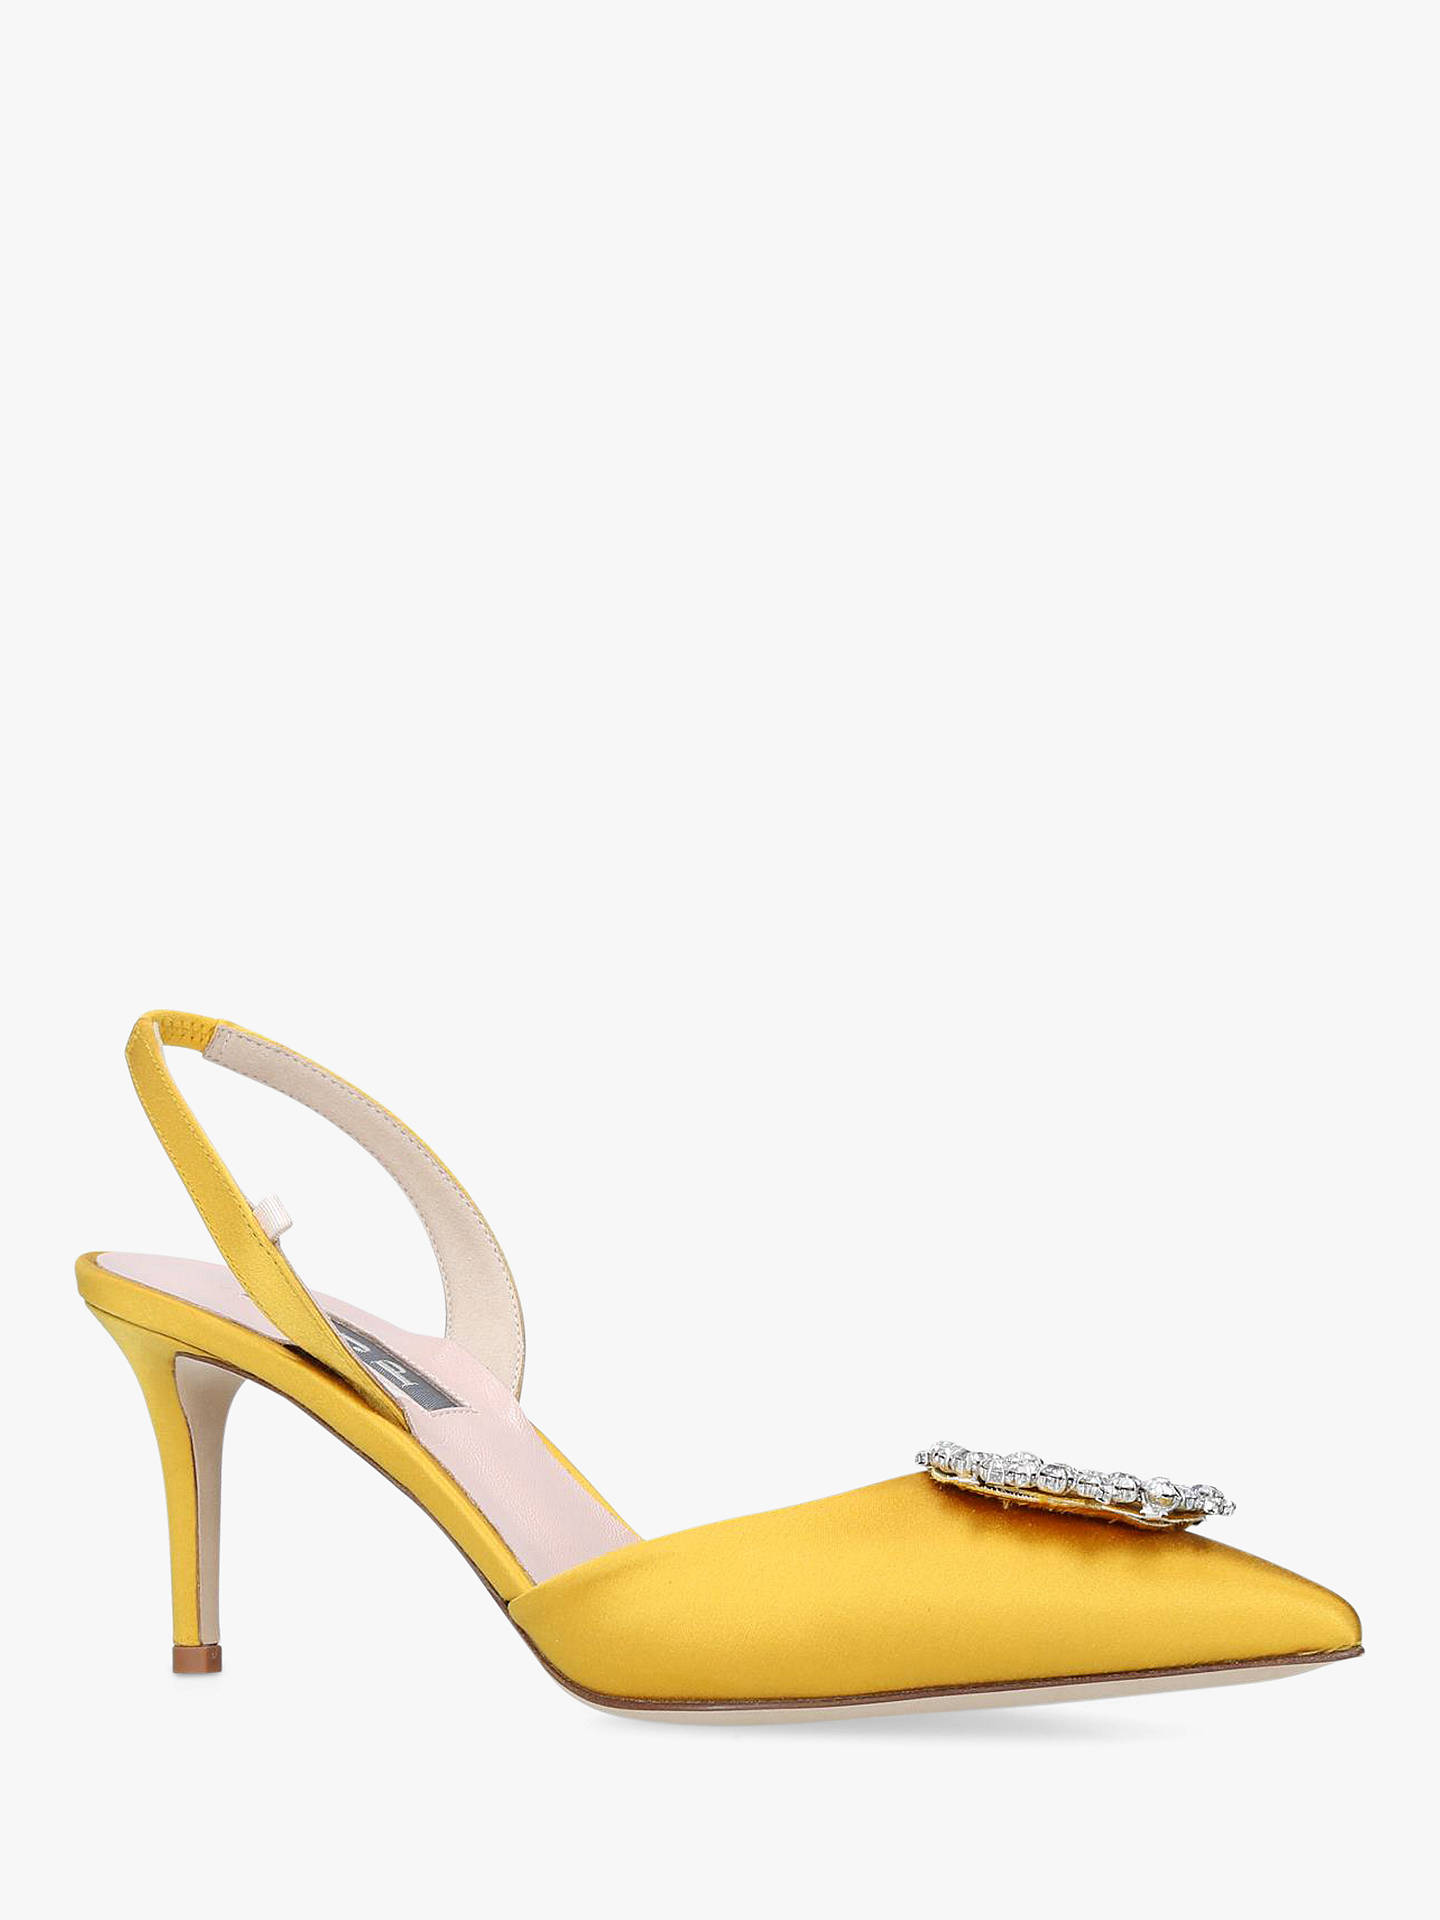 0f34a674daa ... Buy SJP by Sarah Jessica Parker Mabel Satin Slingback Court Shoes